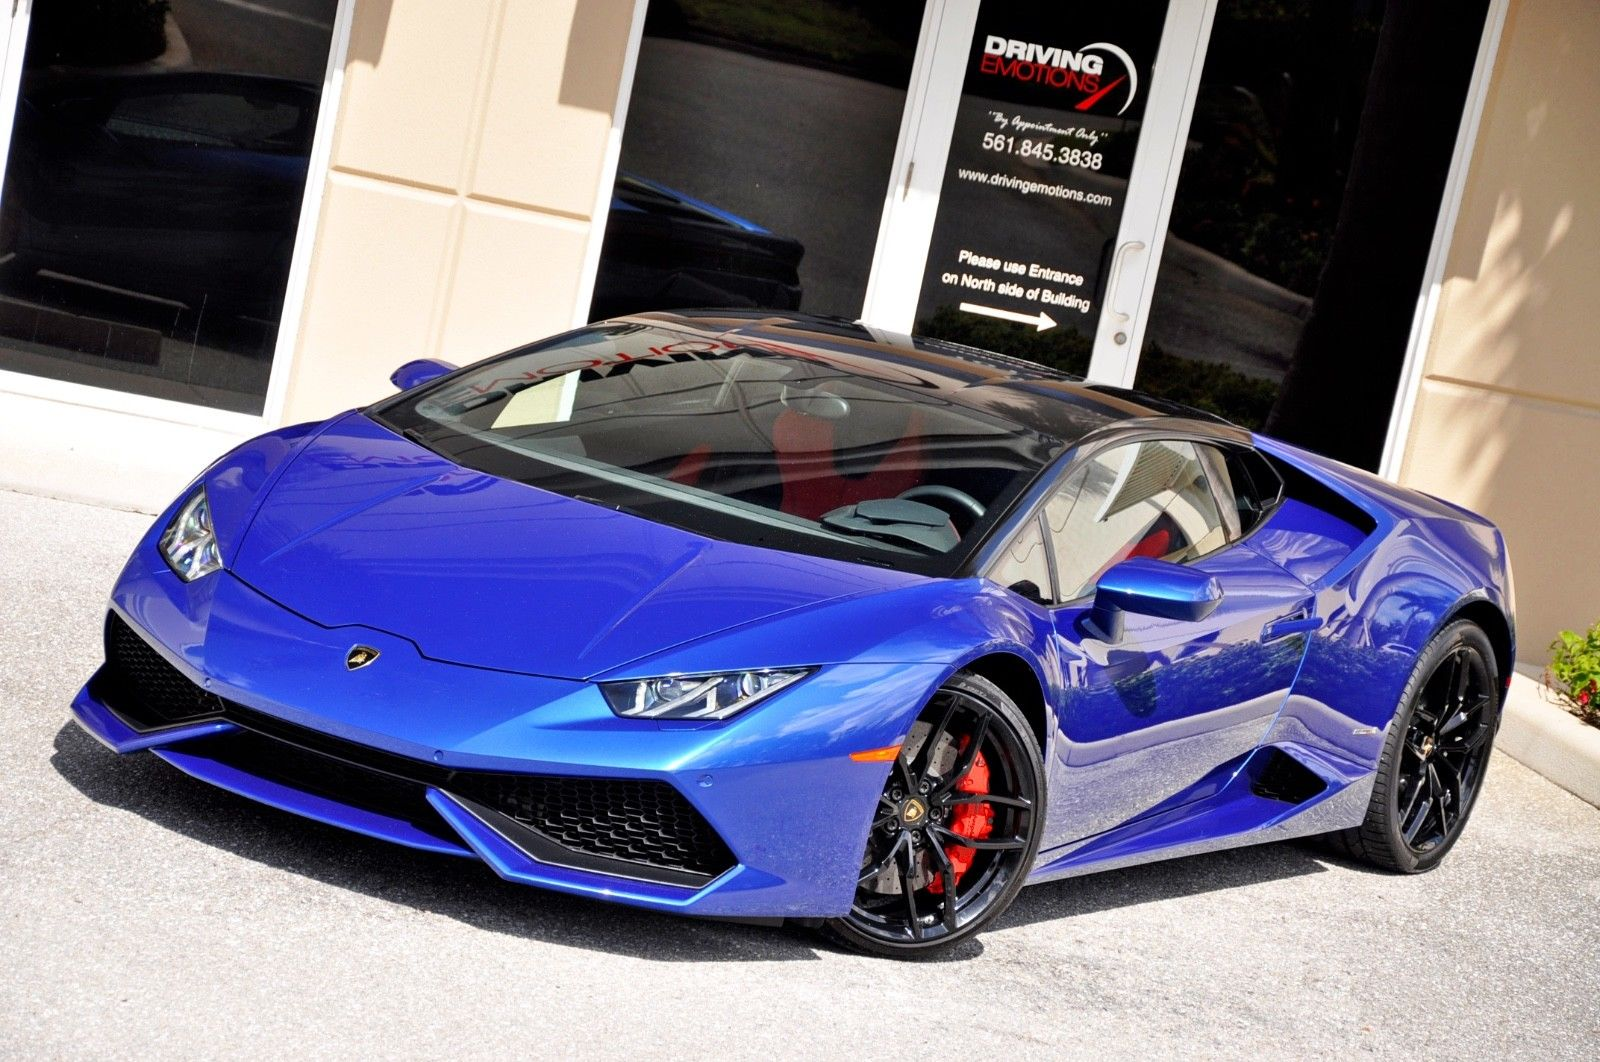 Z06 Corvette For Sale >> Awesome 2015 Lamborghini Huracan LP610-4 2015 LAMBORGHINI